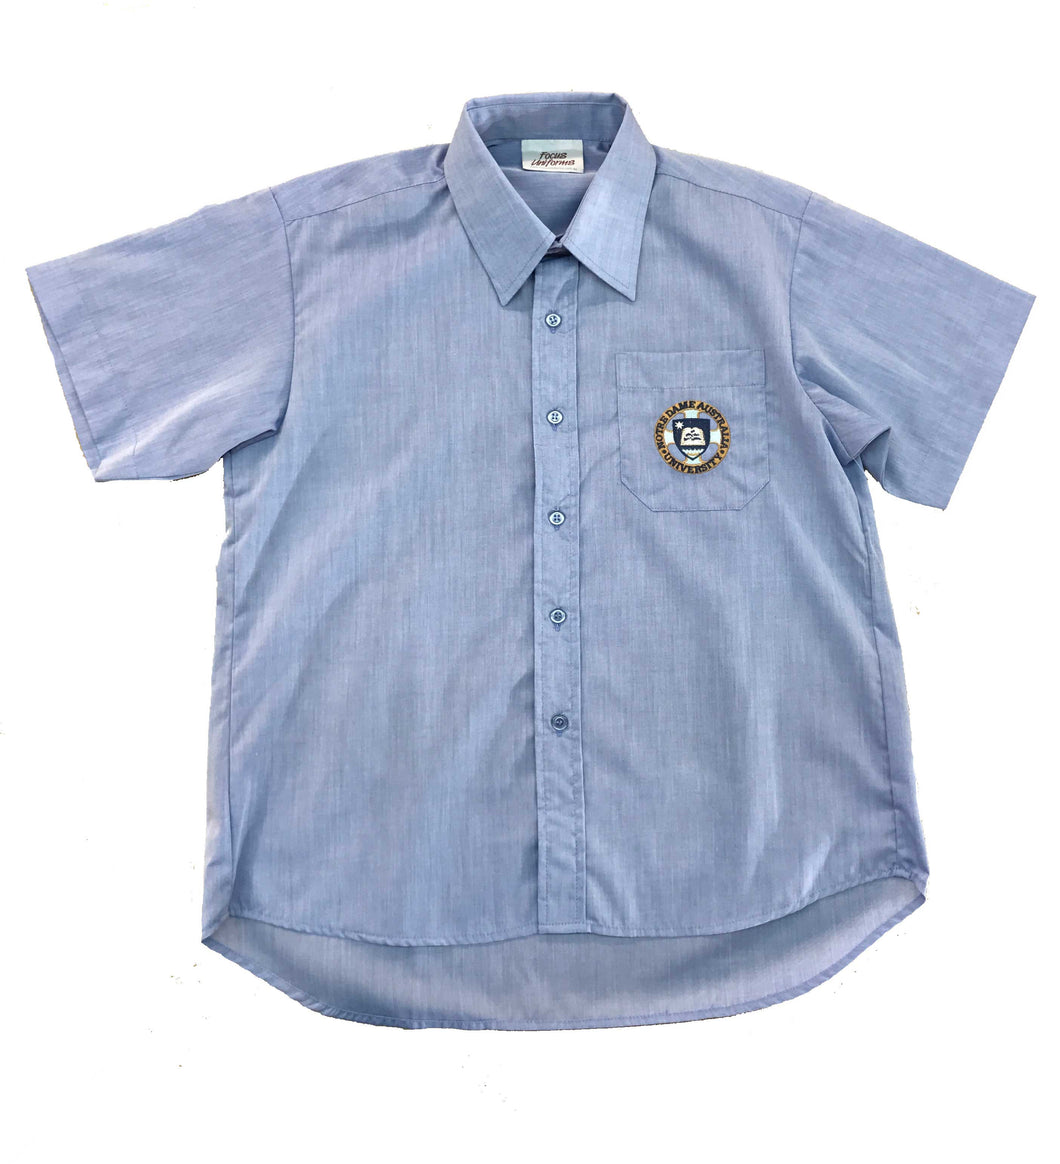 8125ND - Men's S/S Shirt